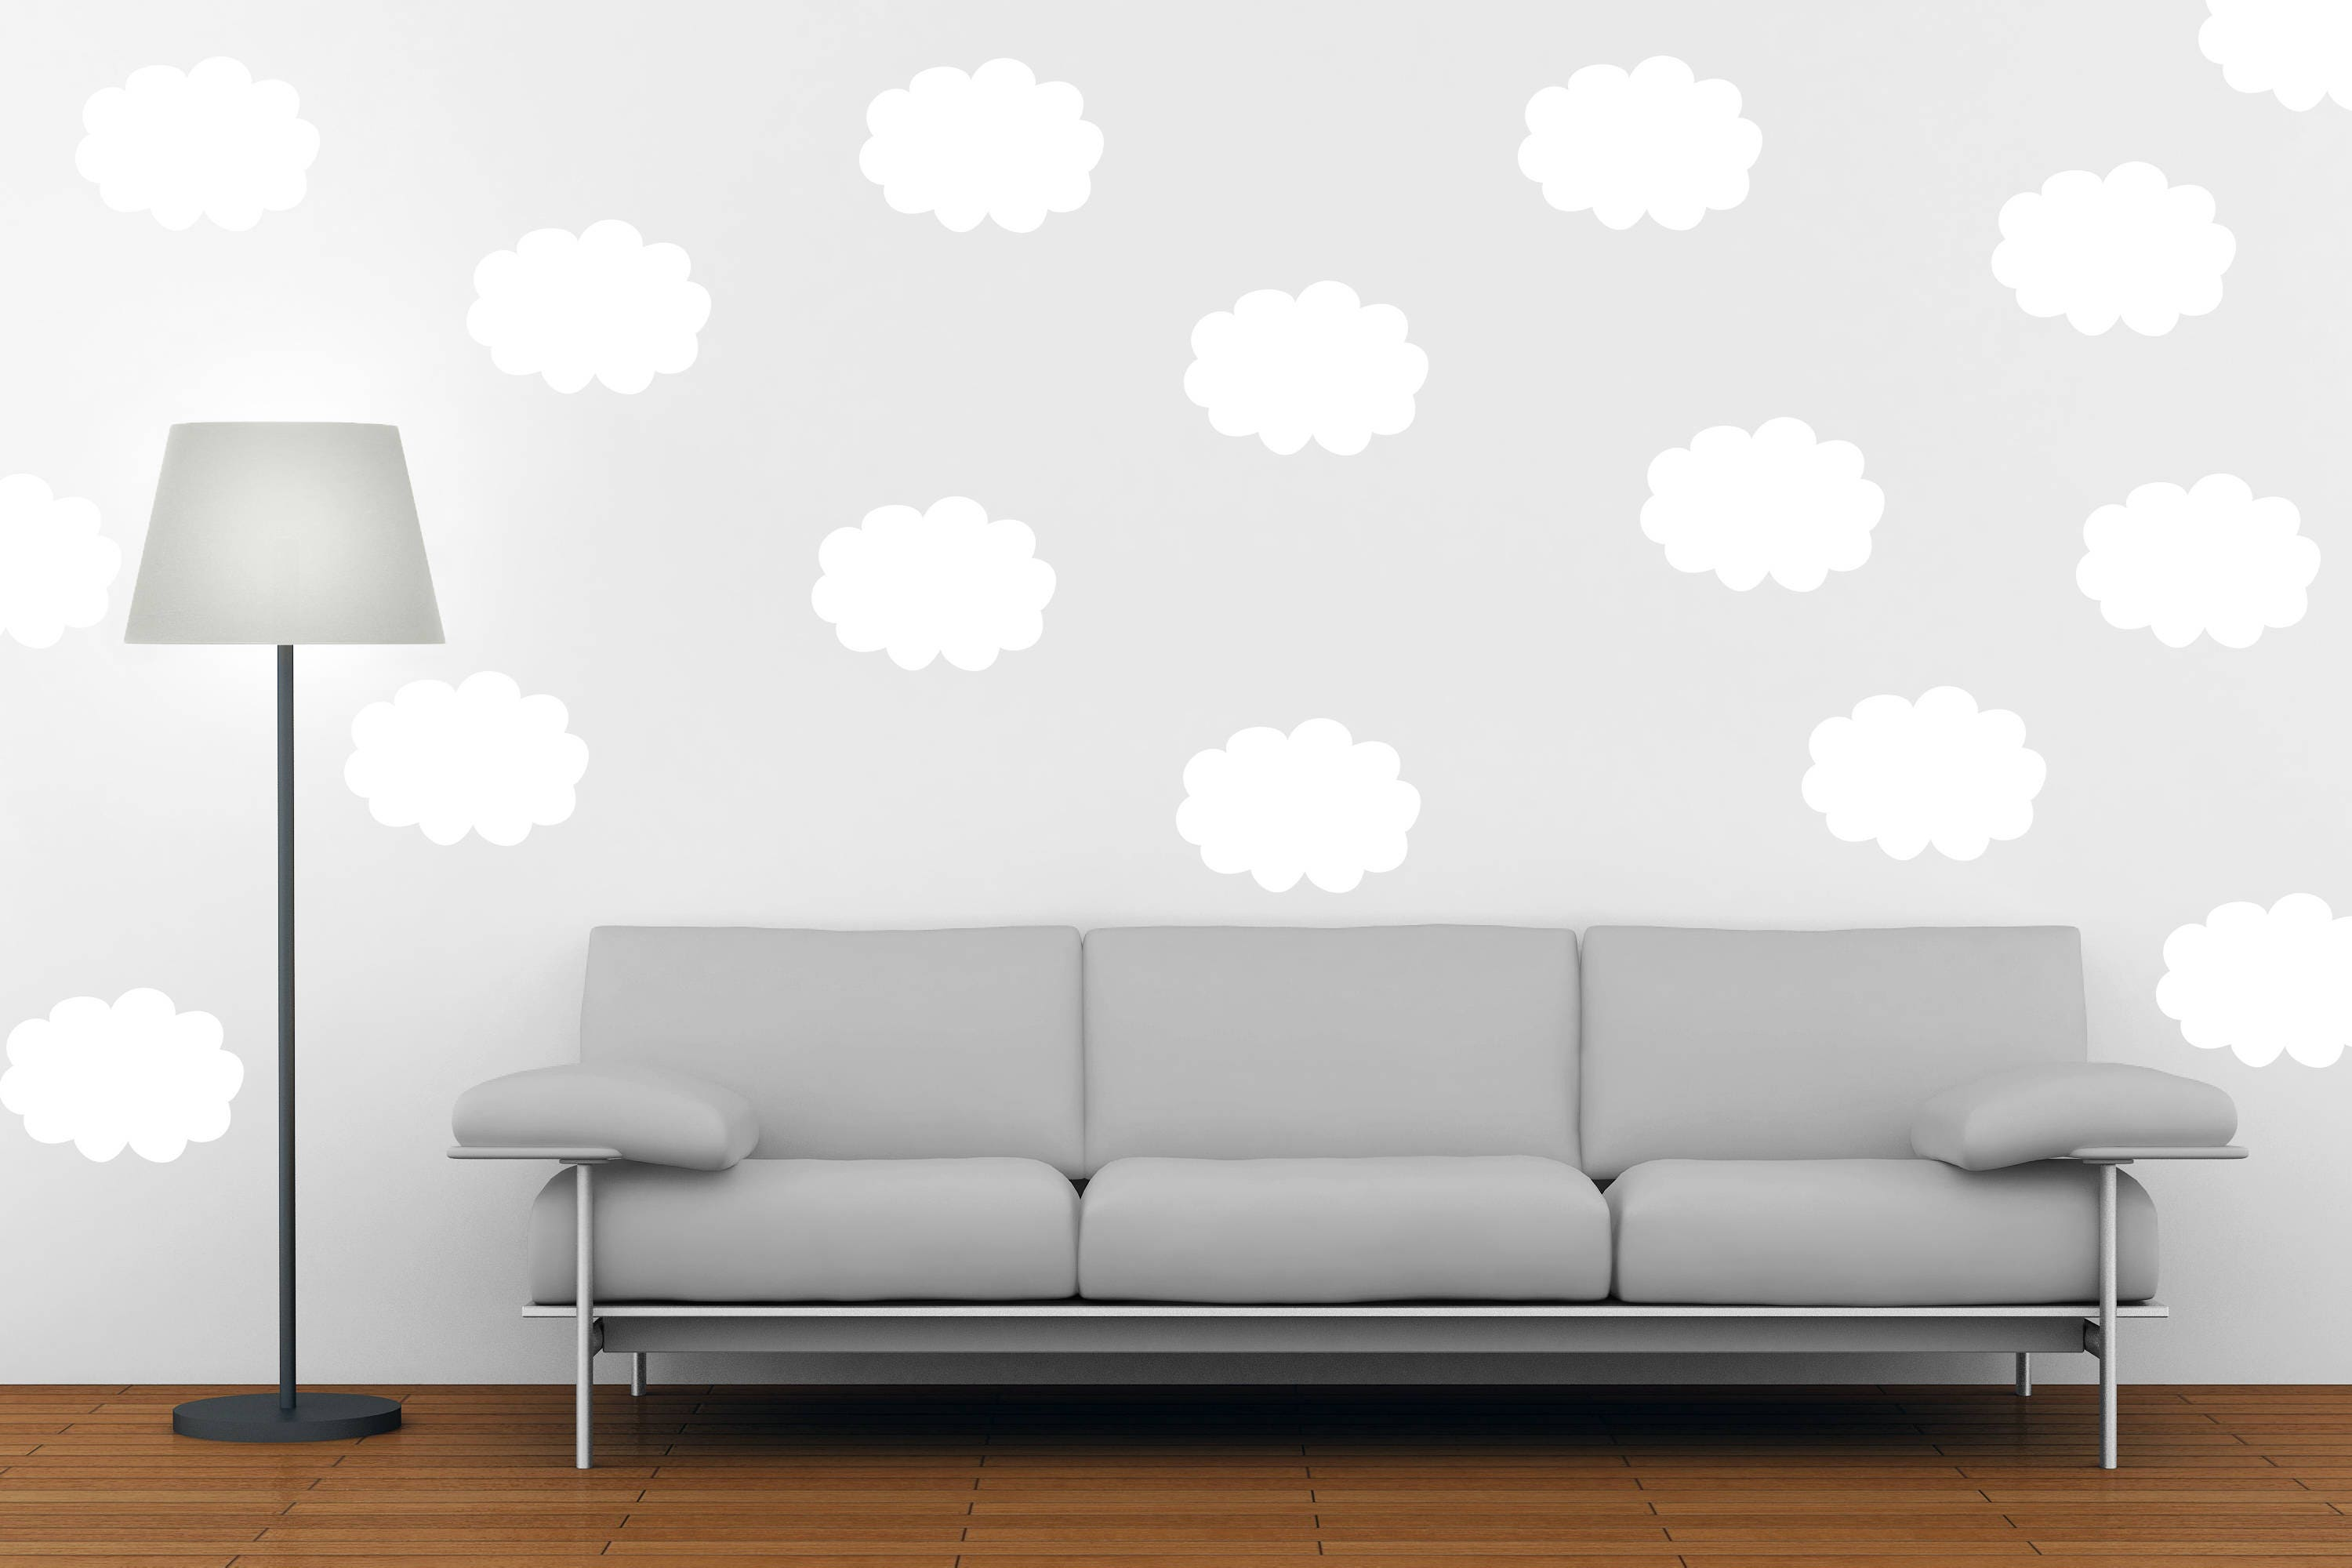 Cloud Wall Decal   Cloud Wall Decor   Vinyl Wall Decal   Clouds   Clouds  Decals   Home Decor   Cloud Wall Art